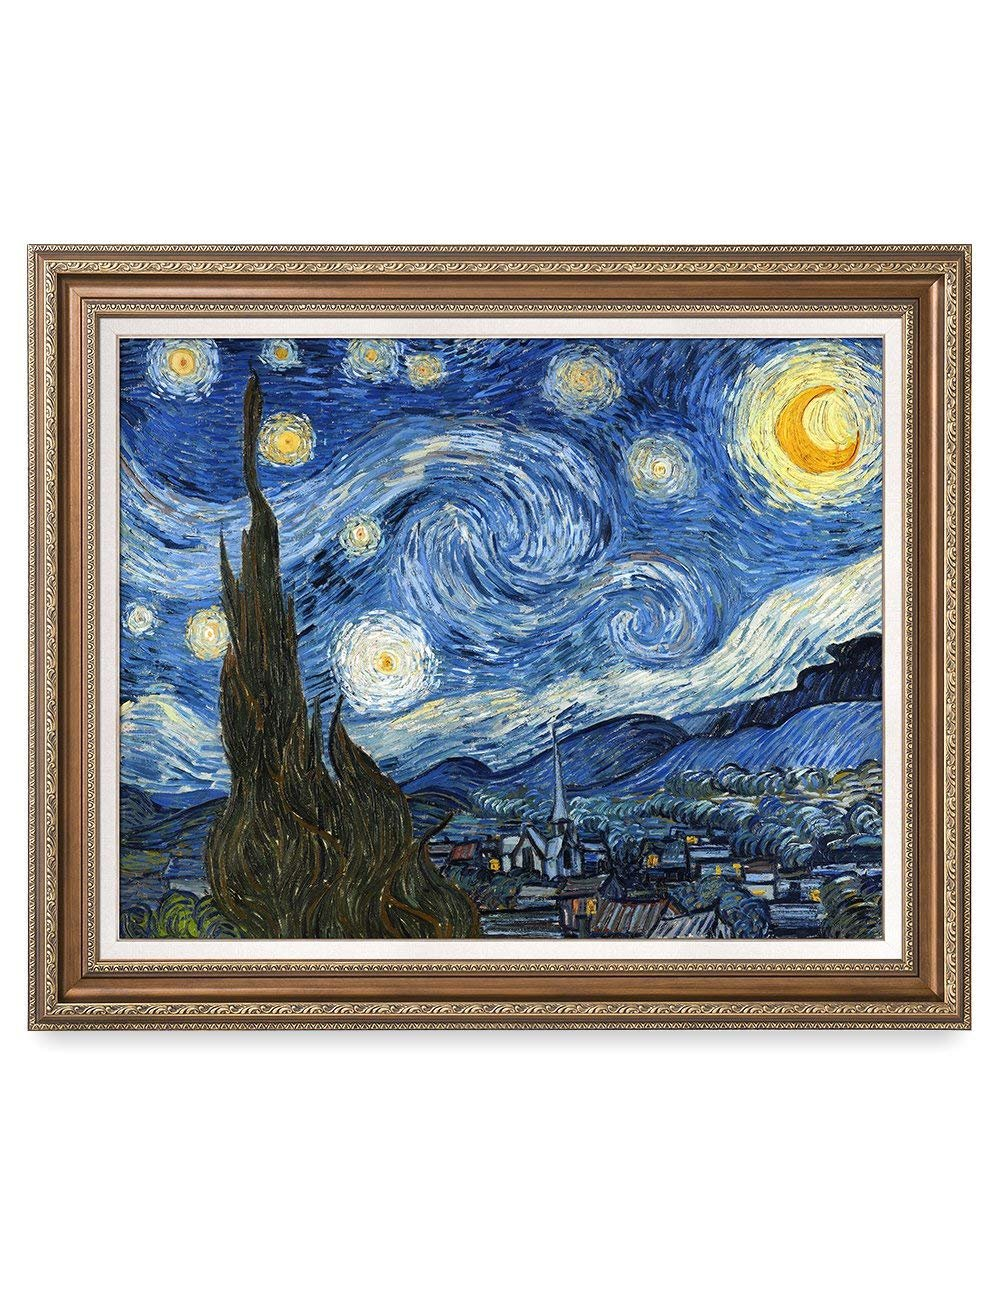 DECORARTS - Starry Night, Vincent Van Gogh Classic Art. Giclee Prints Framed Art for Wall Decor. Framed Size: 35x29